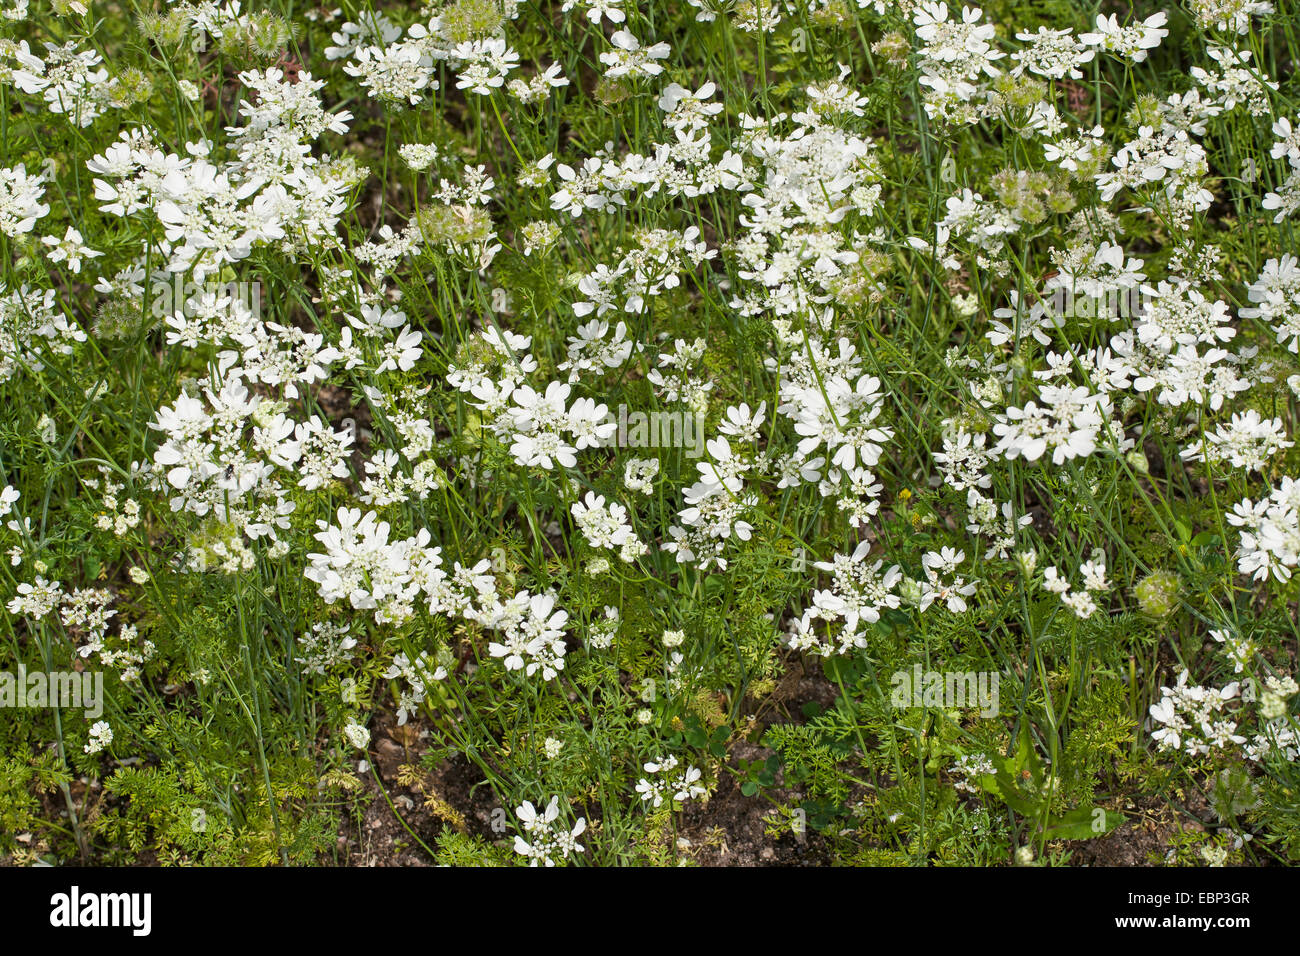 White lace flower, White laceflower, Minoan Lace (Orlaya grandiflora, Caucalis grandiflora), blooming, Germany Stock Photo